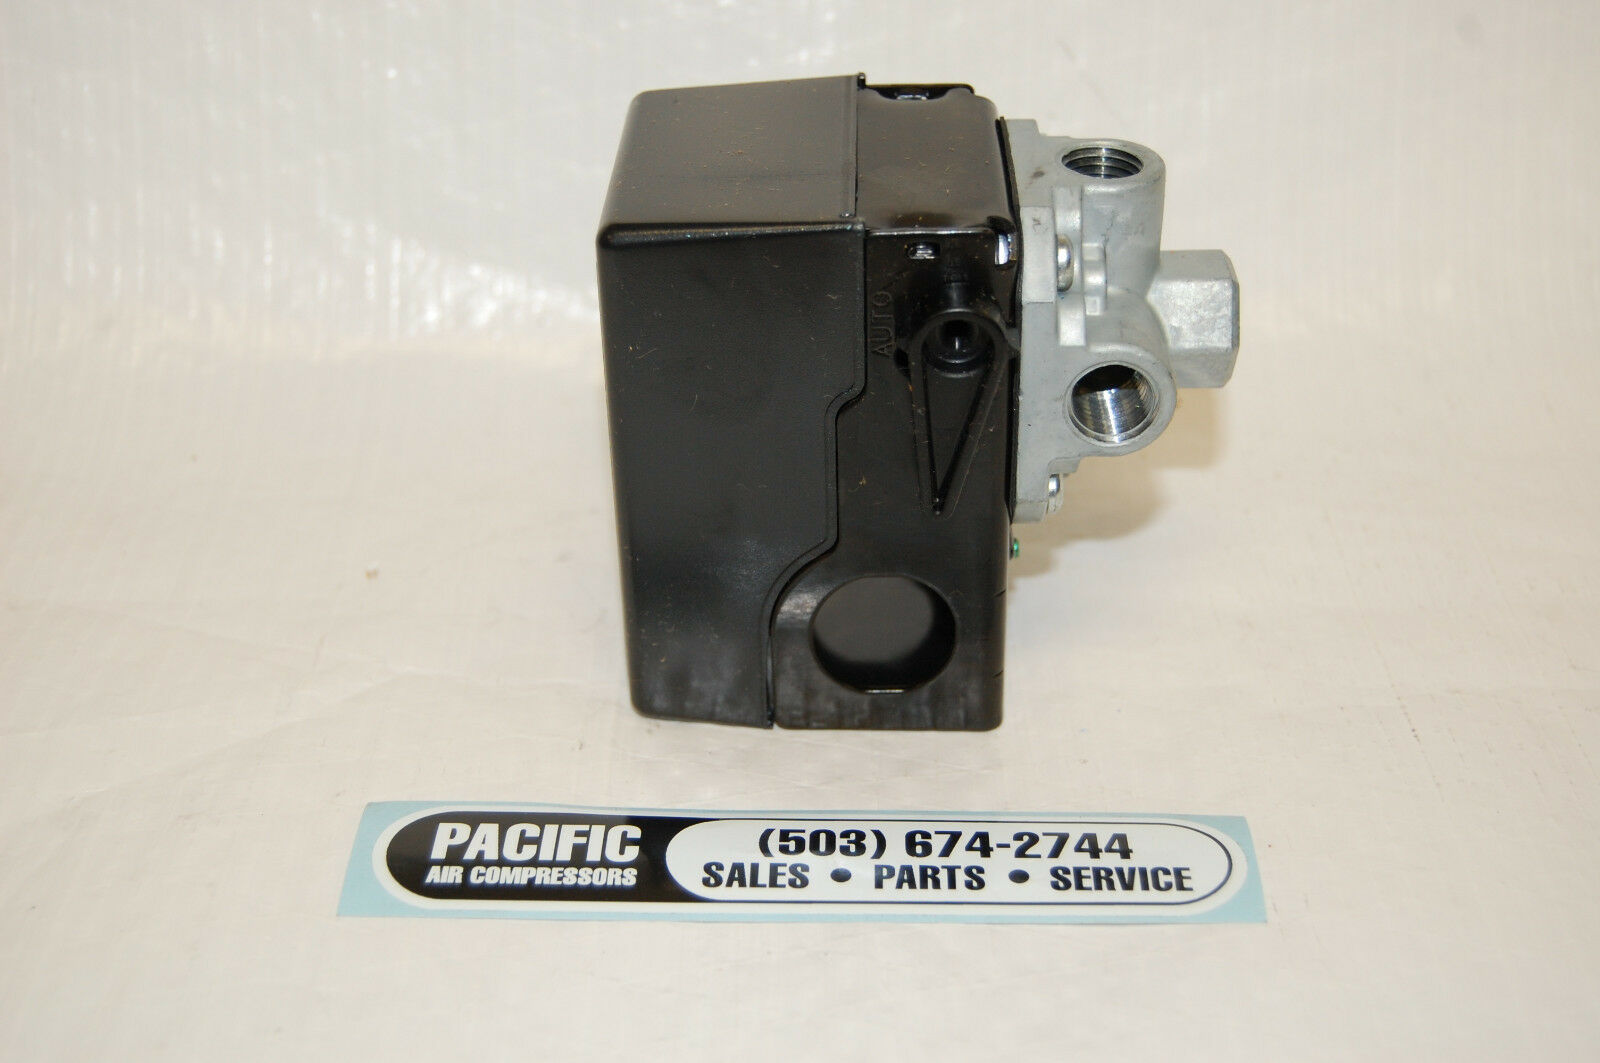 Ingersoll Rand 2475 Pressure Switch 145-175 PSI With Unloader and on off  Lever | eBay